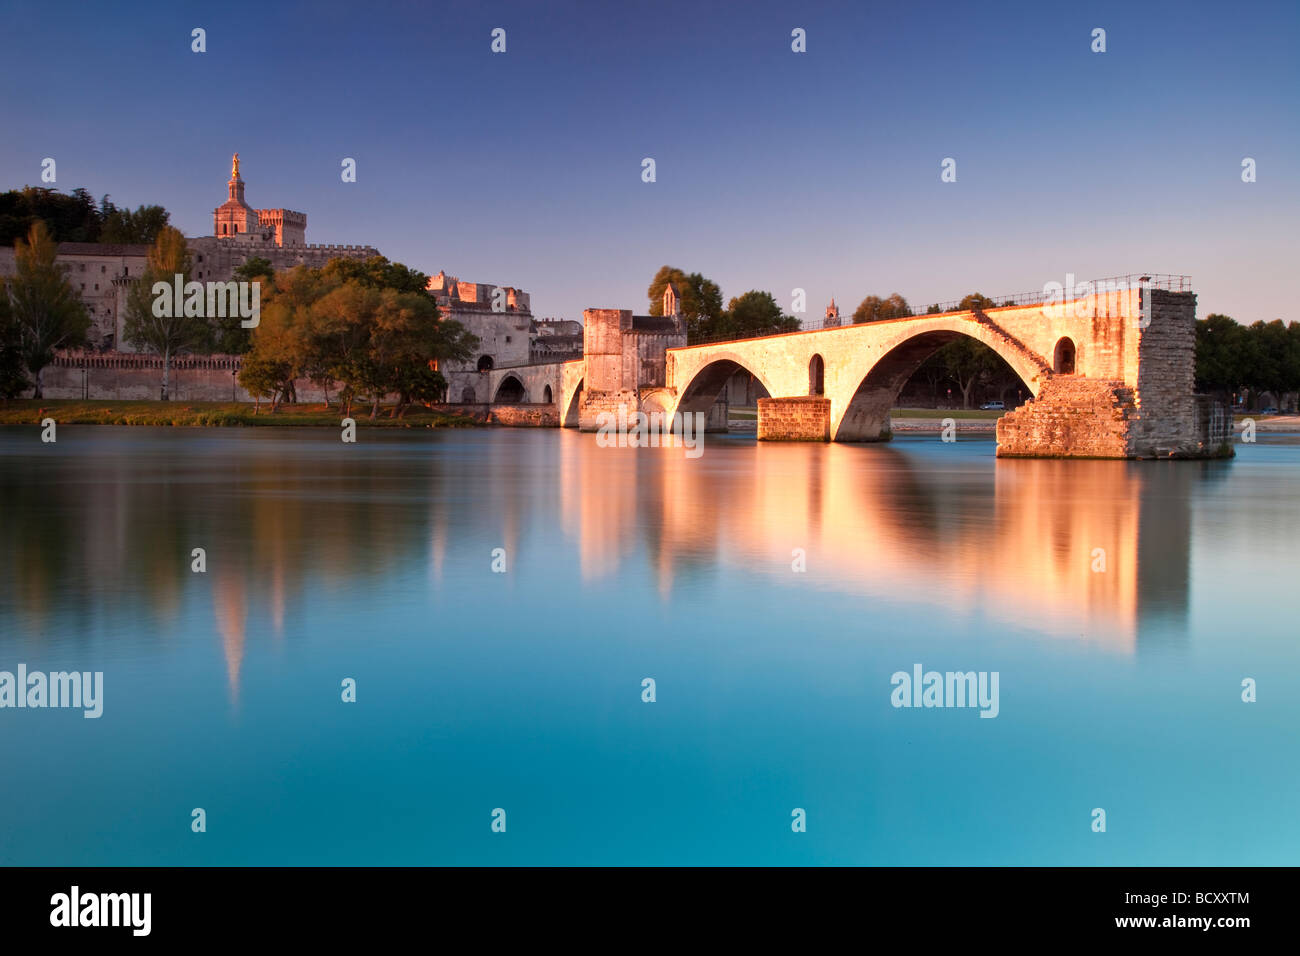 Pont St. Benezet over River Rhone with Palais des Papes, Avignon France - Stock Image